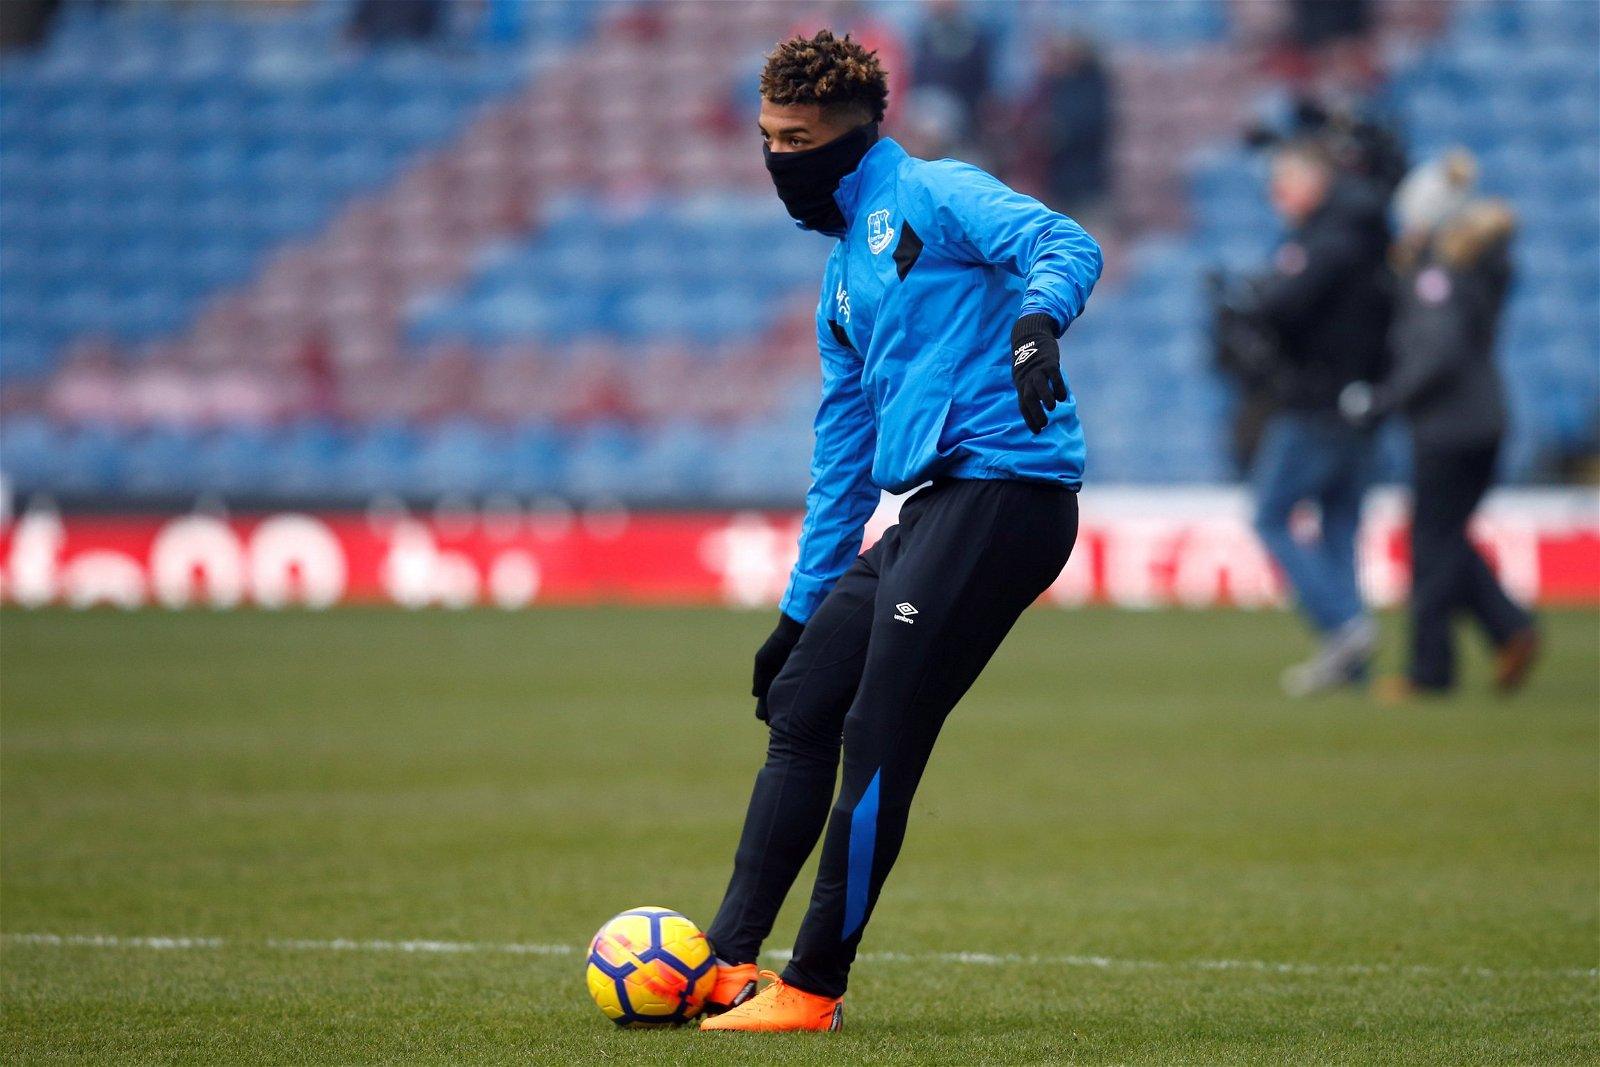 Mason Holgate warms up